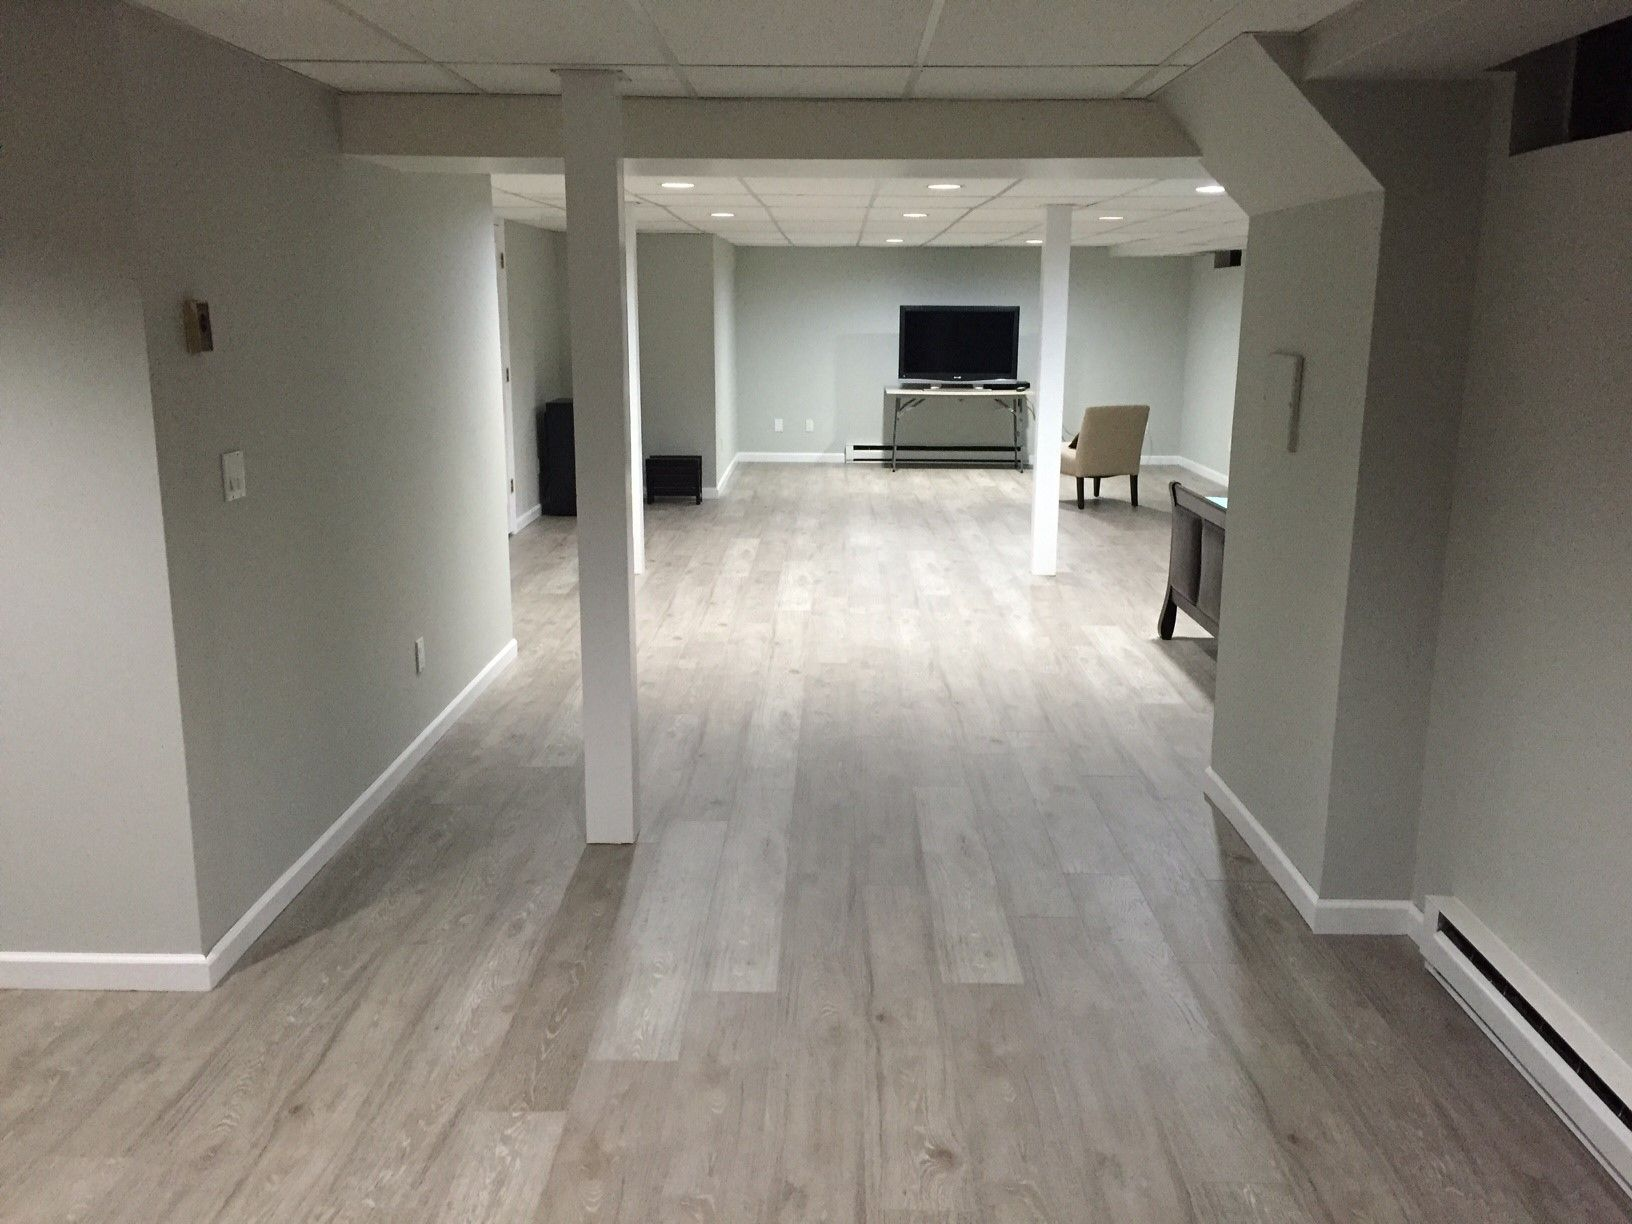 Jose G Upgraded His Basement With Kronoswiss Ecru